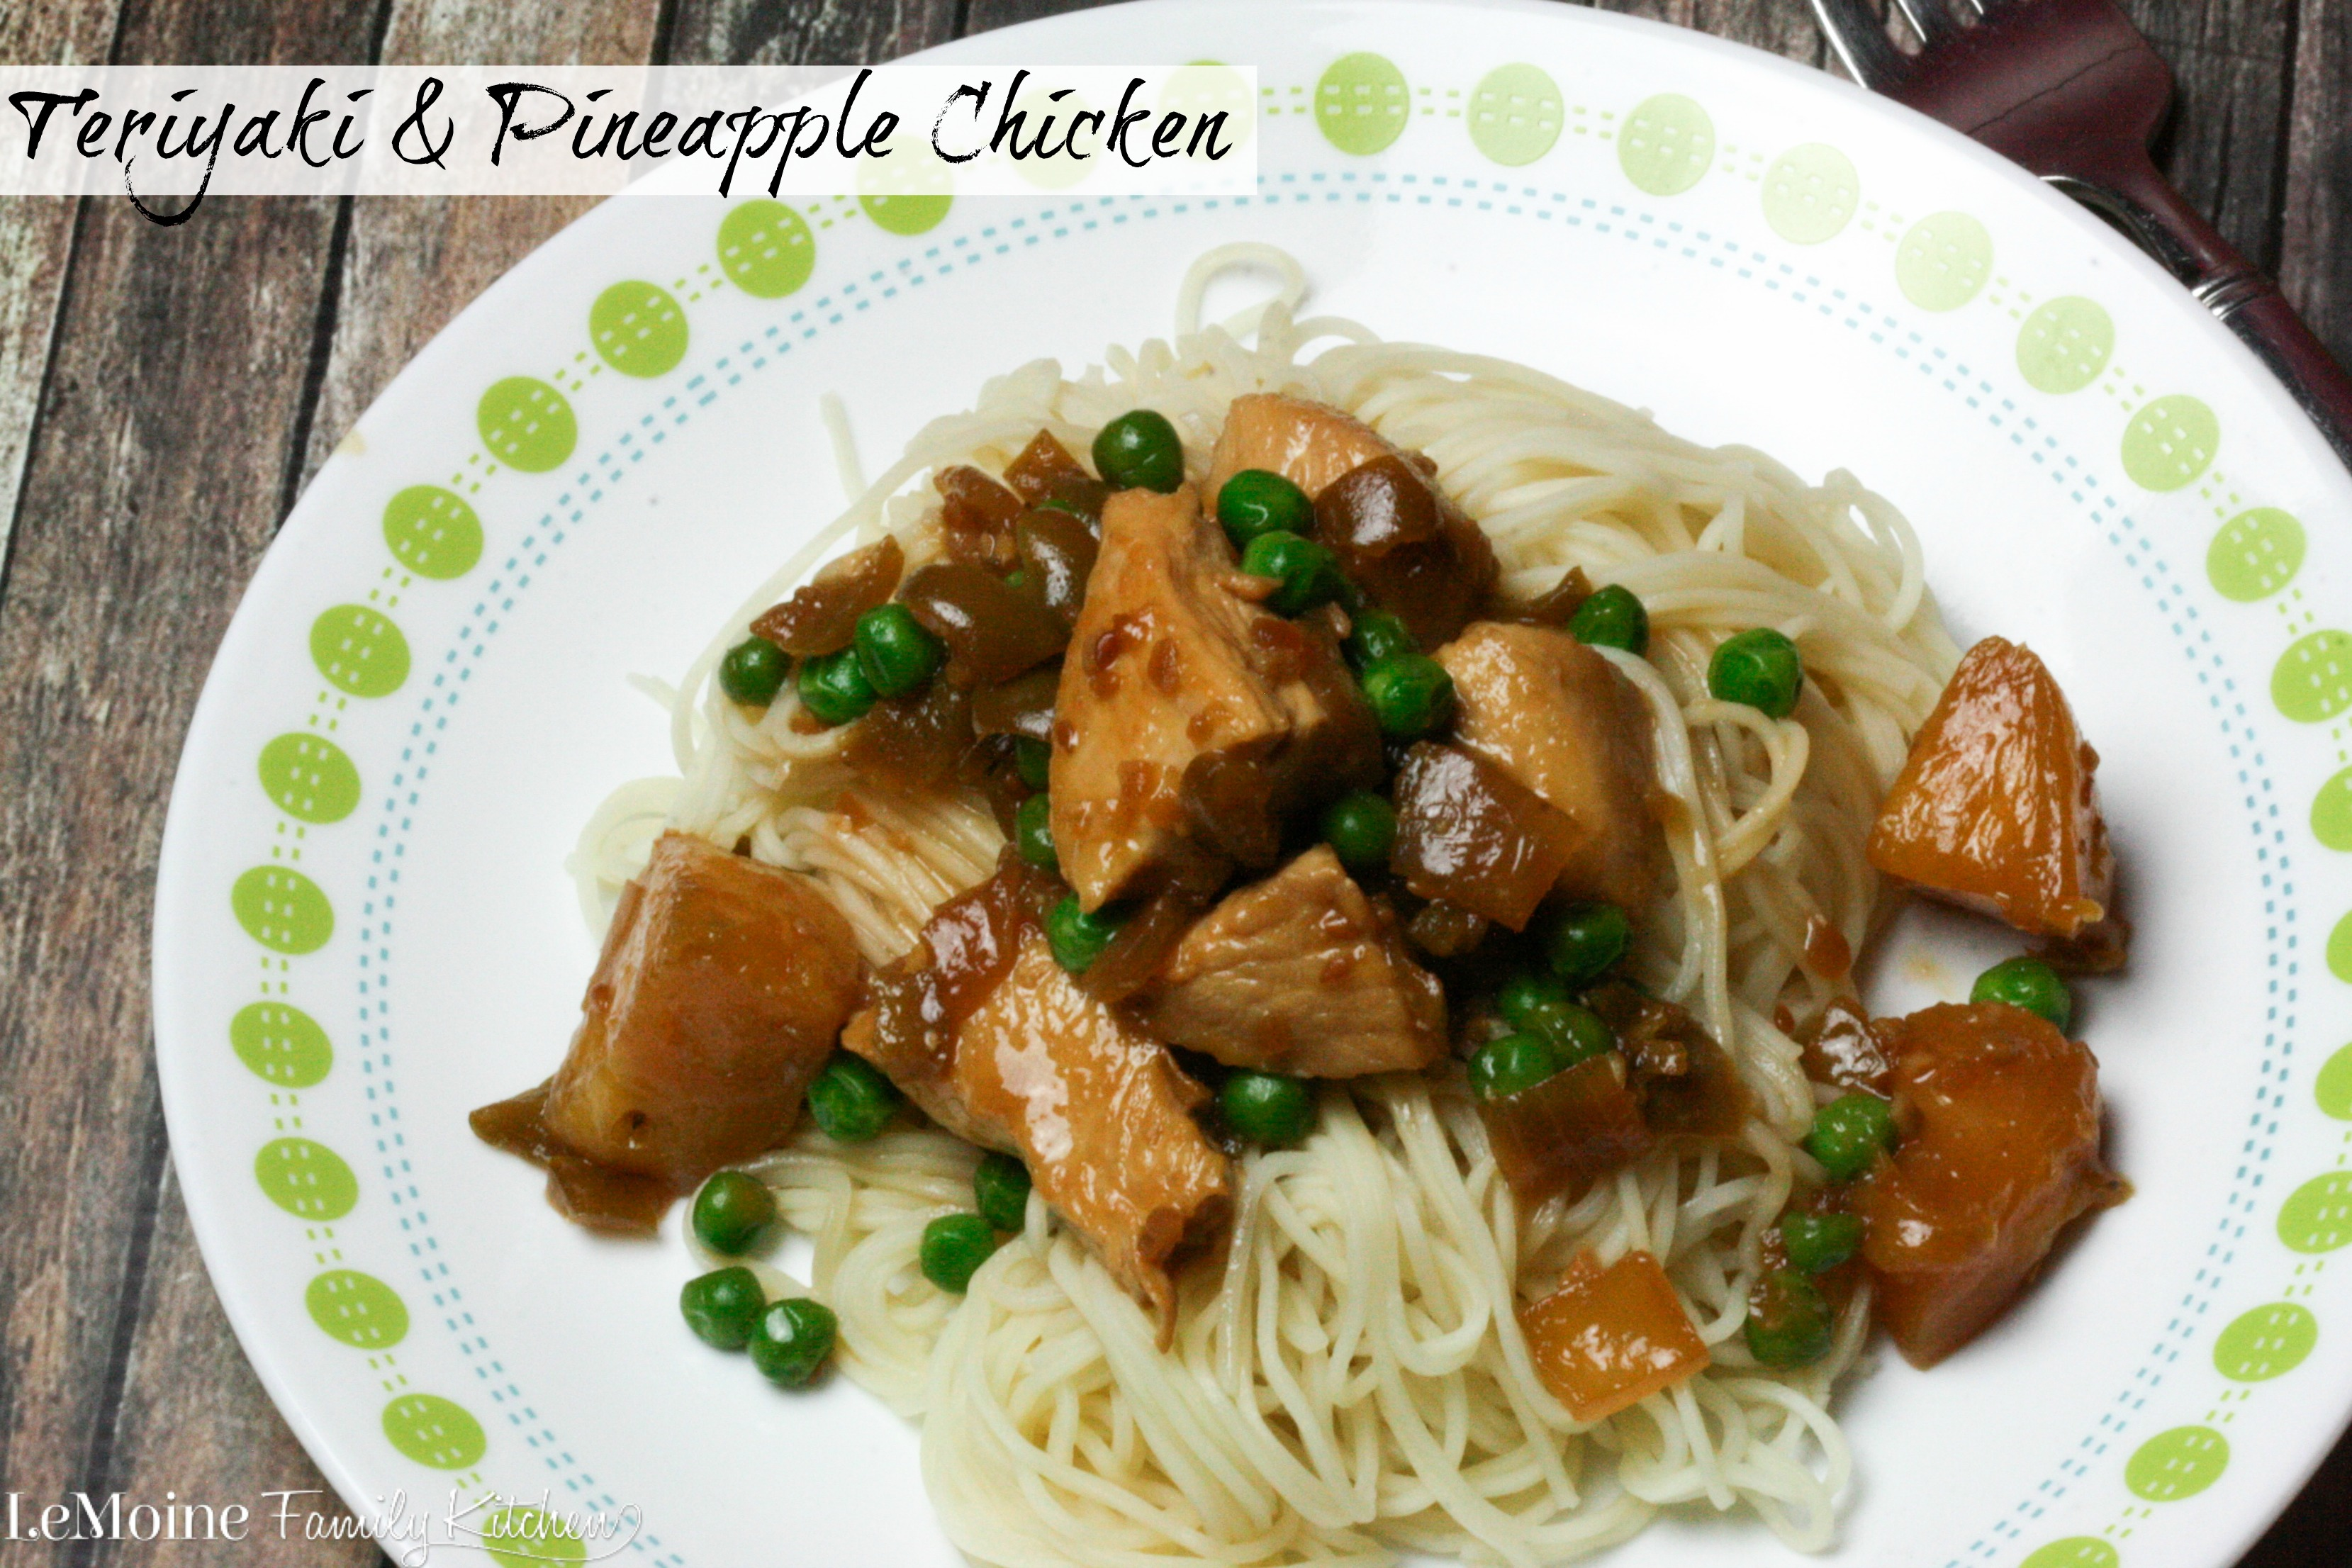 Teriyaki & Pineapple Chicken